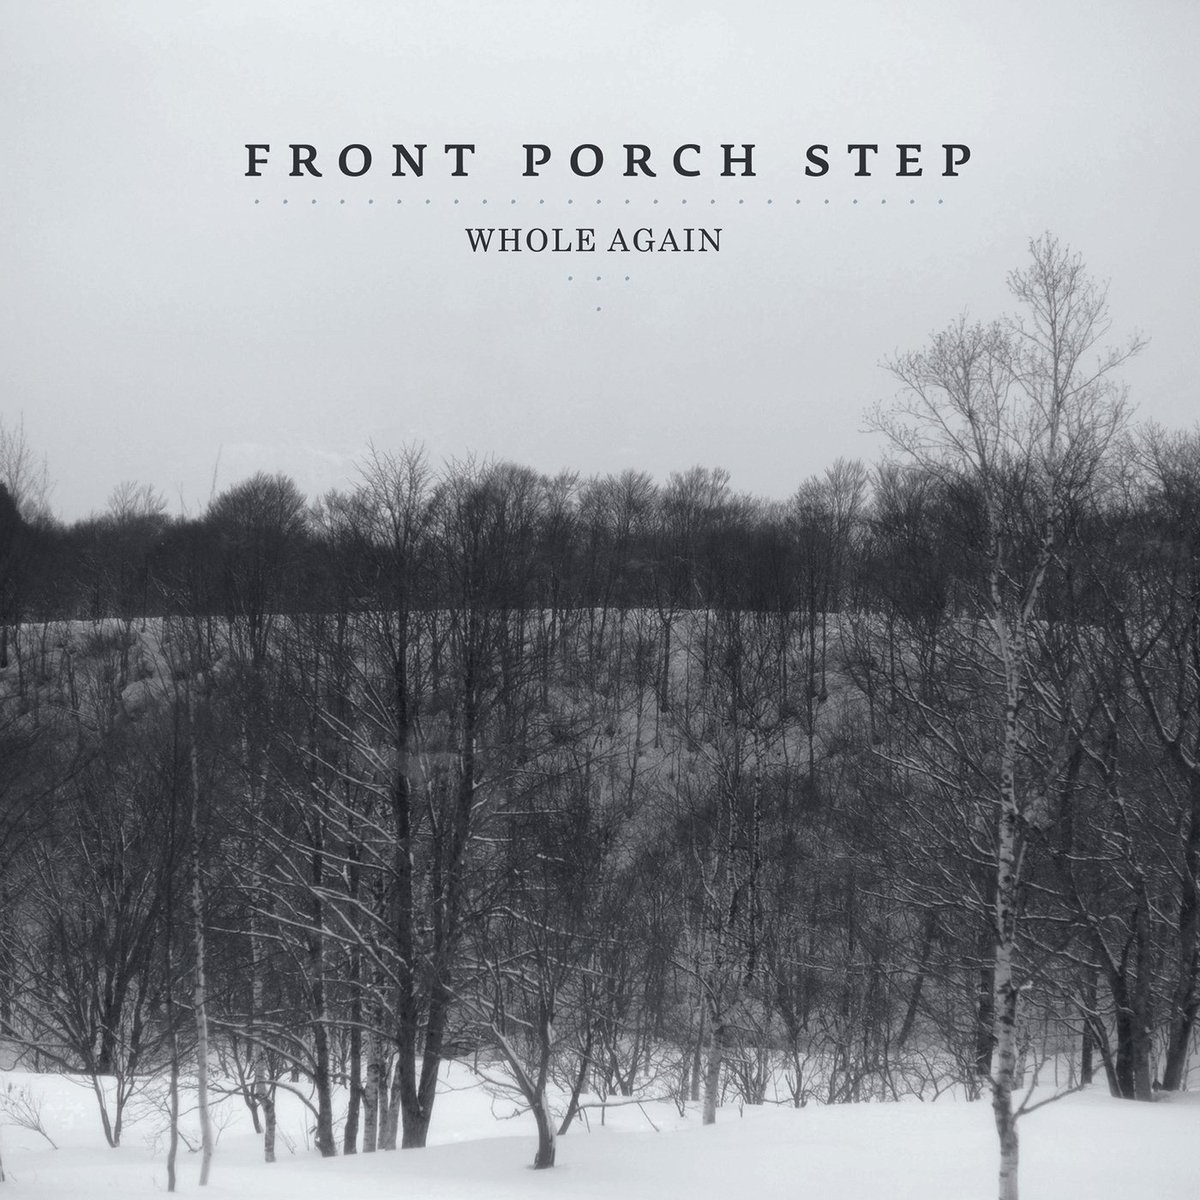 whole again mp3 free download